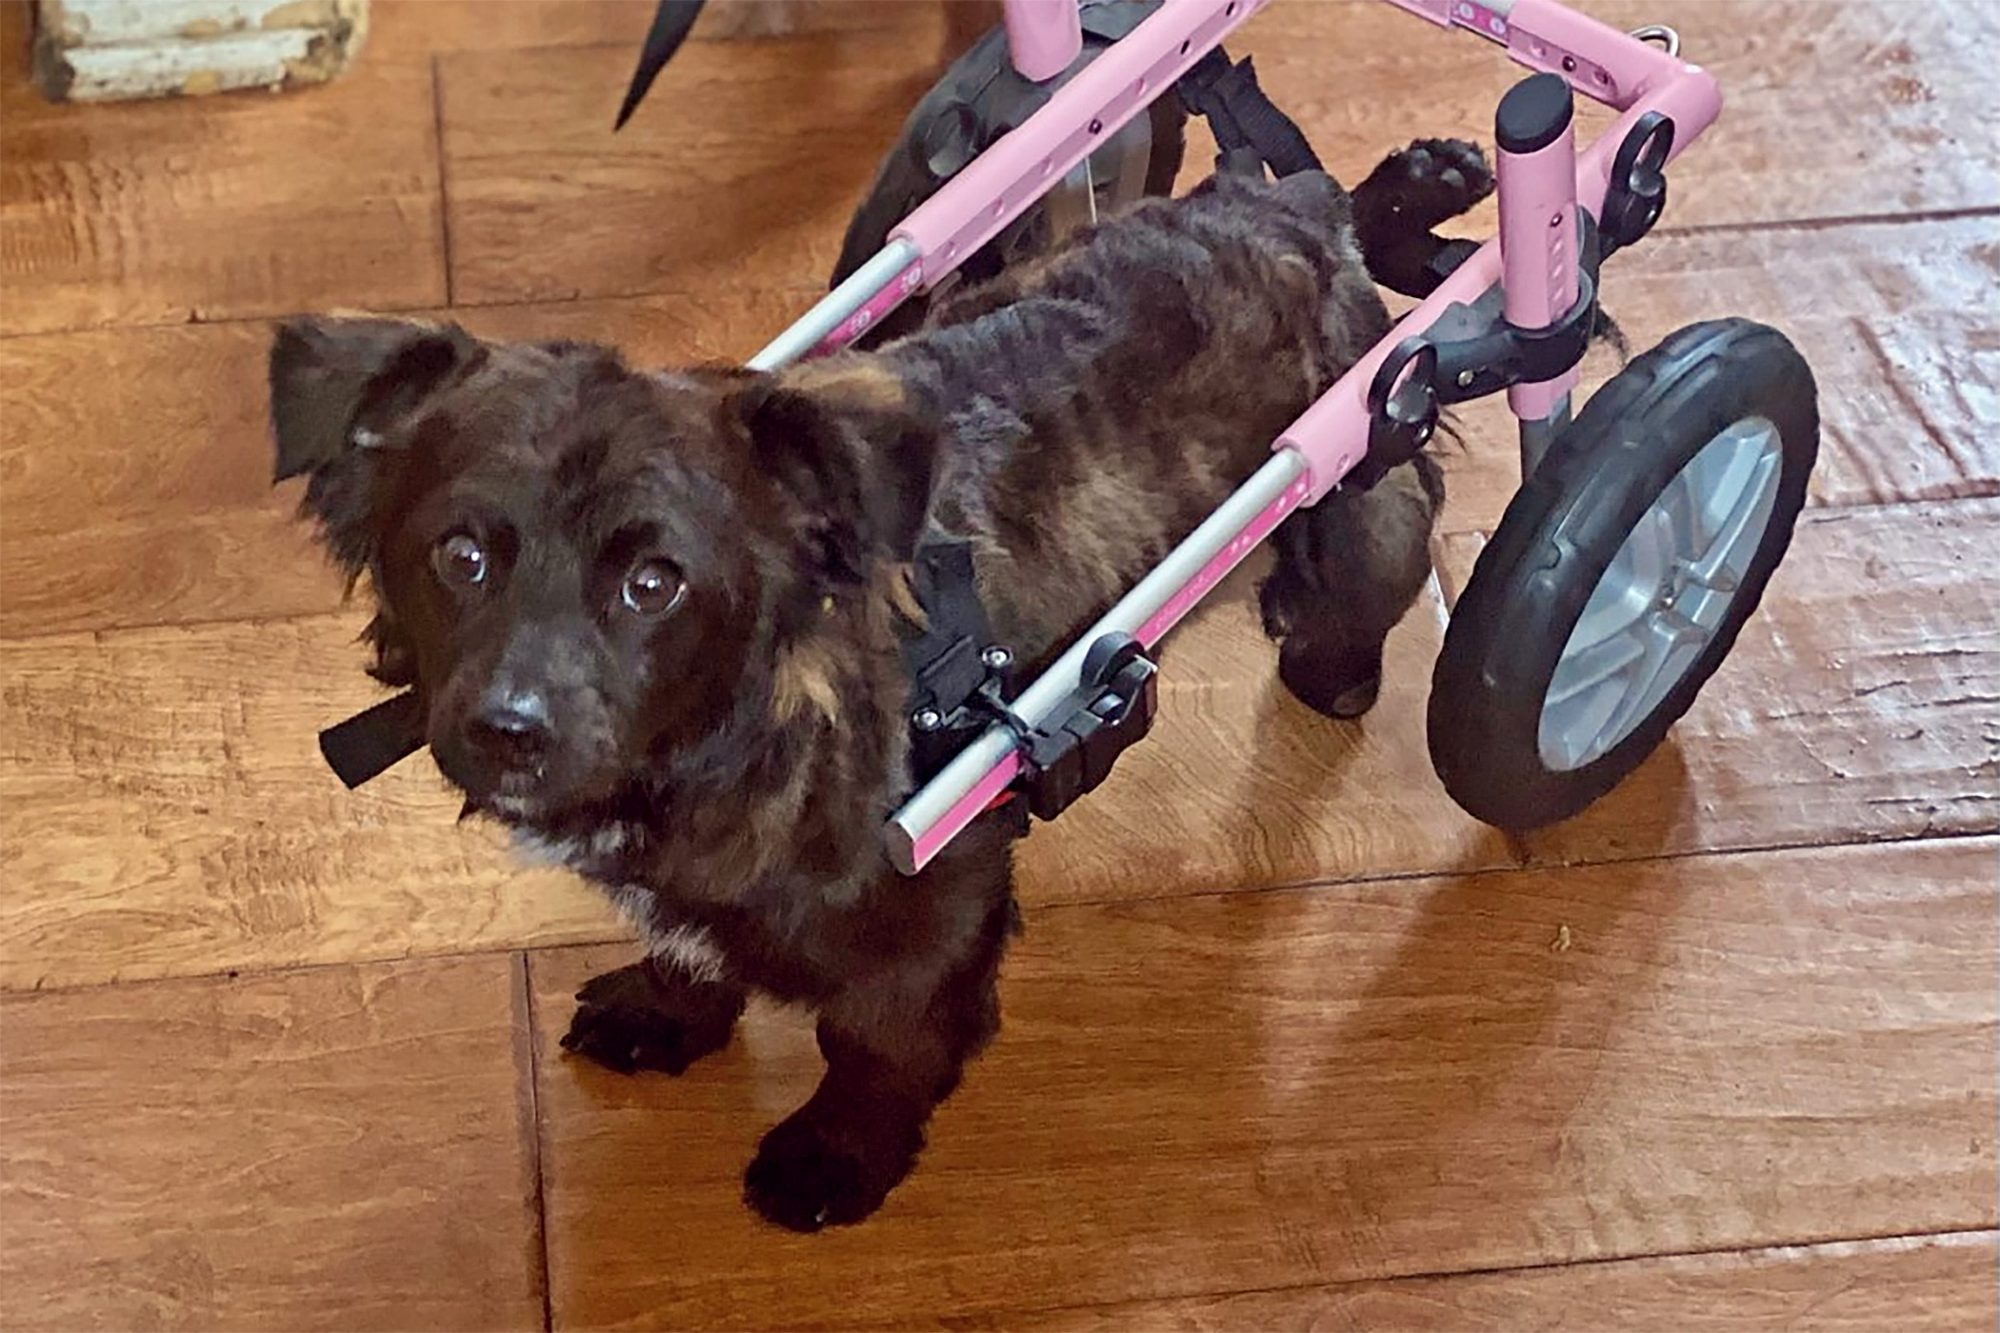 Small black dog uses wheelchair